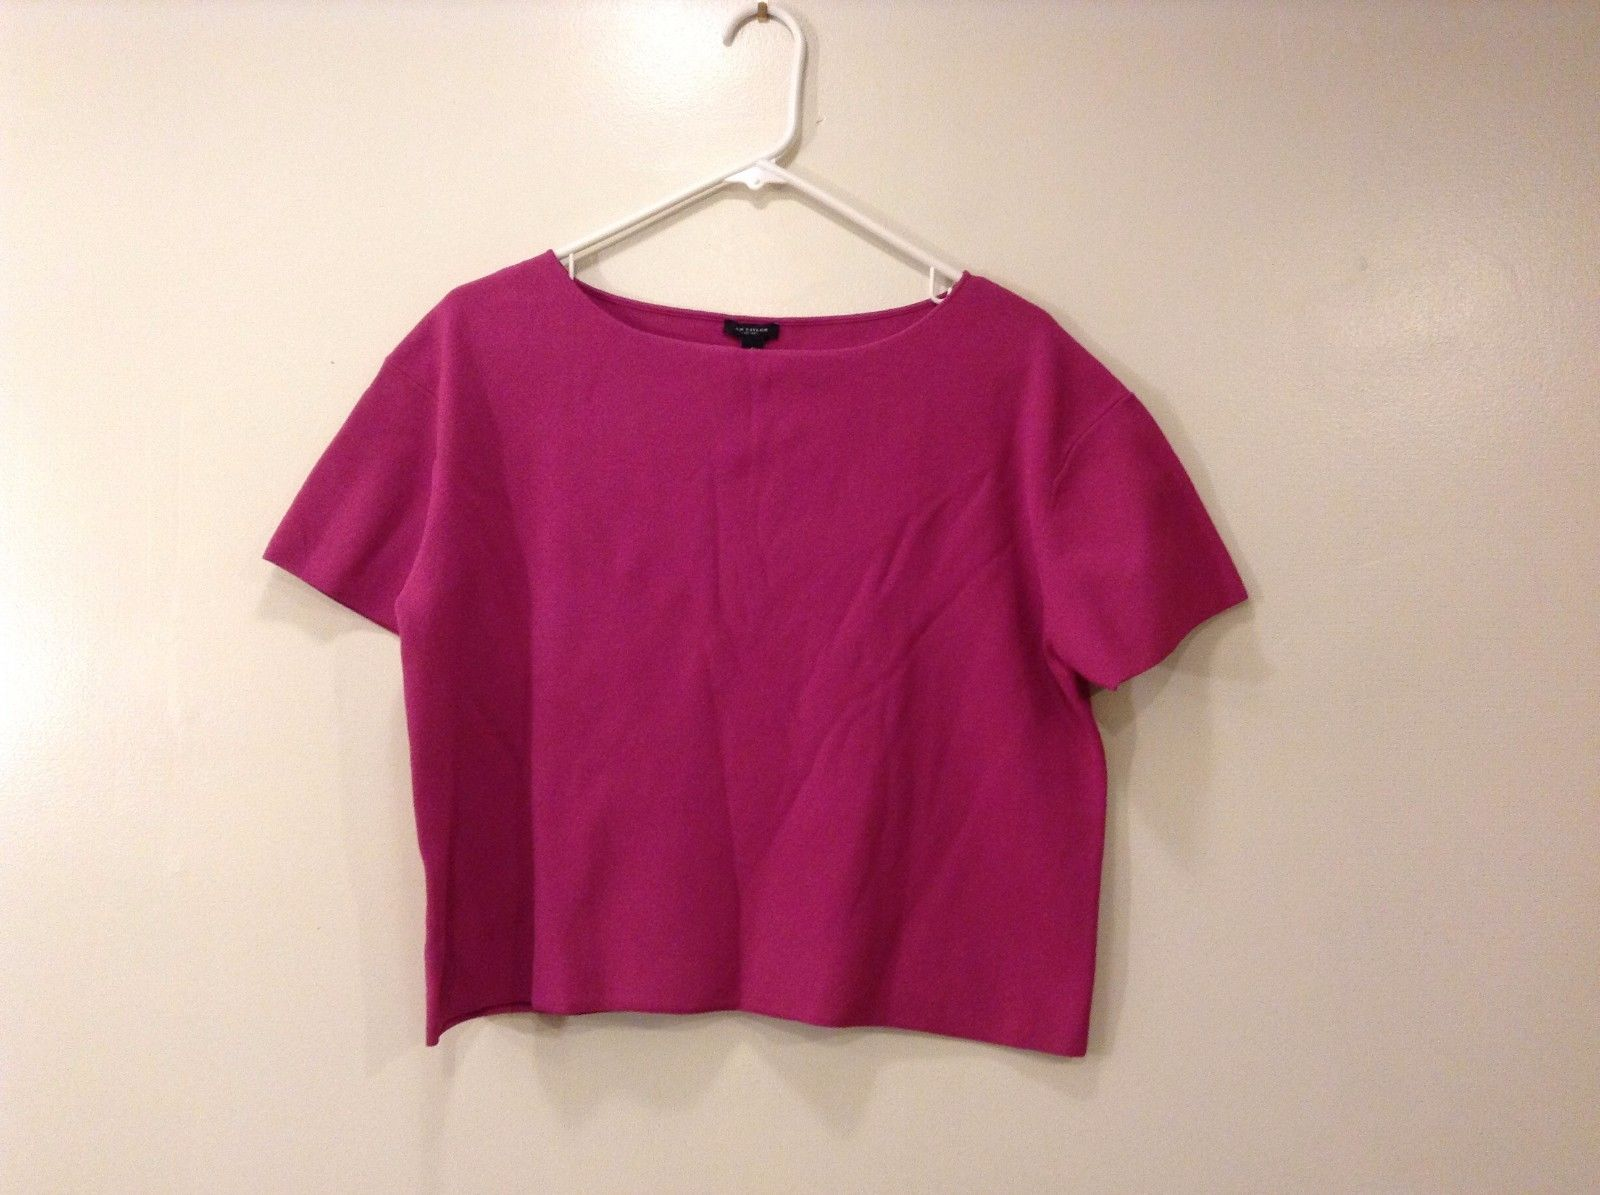 Preowned Excellent Condition Ann Taylor Dark Pink T-Shirt Blouse Size S Boatneck